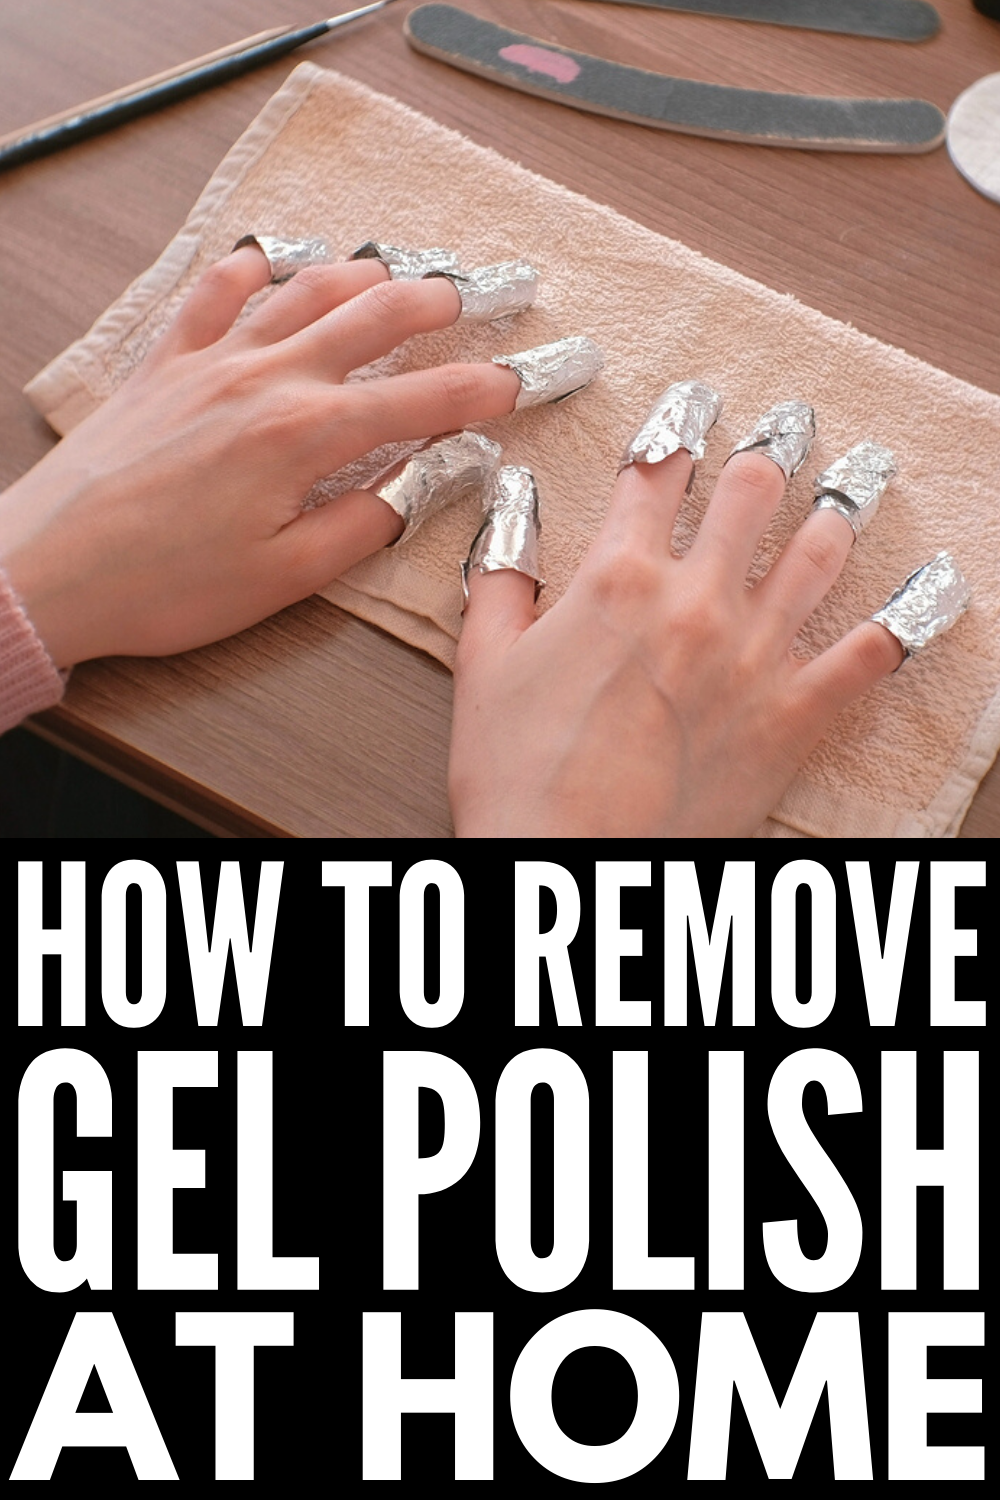 How To Remove Gel Polish At Home 5 Methods That Work Remove Gel Polish Gel Polish Gel Toe Nails